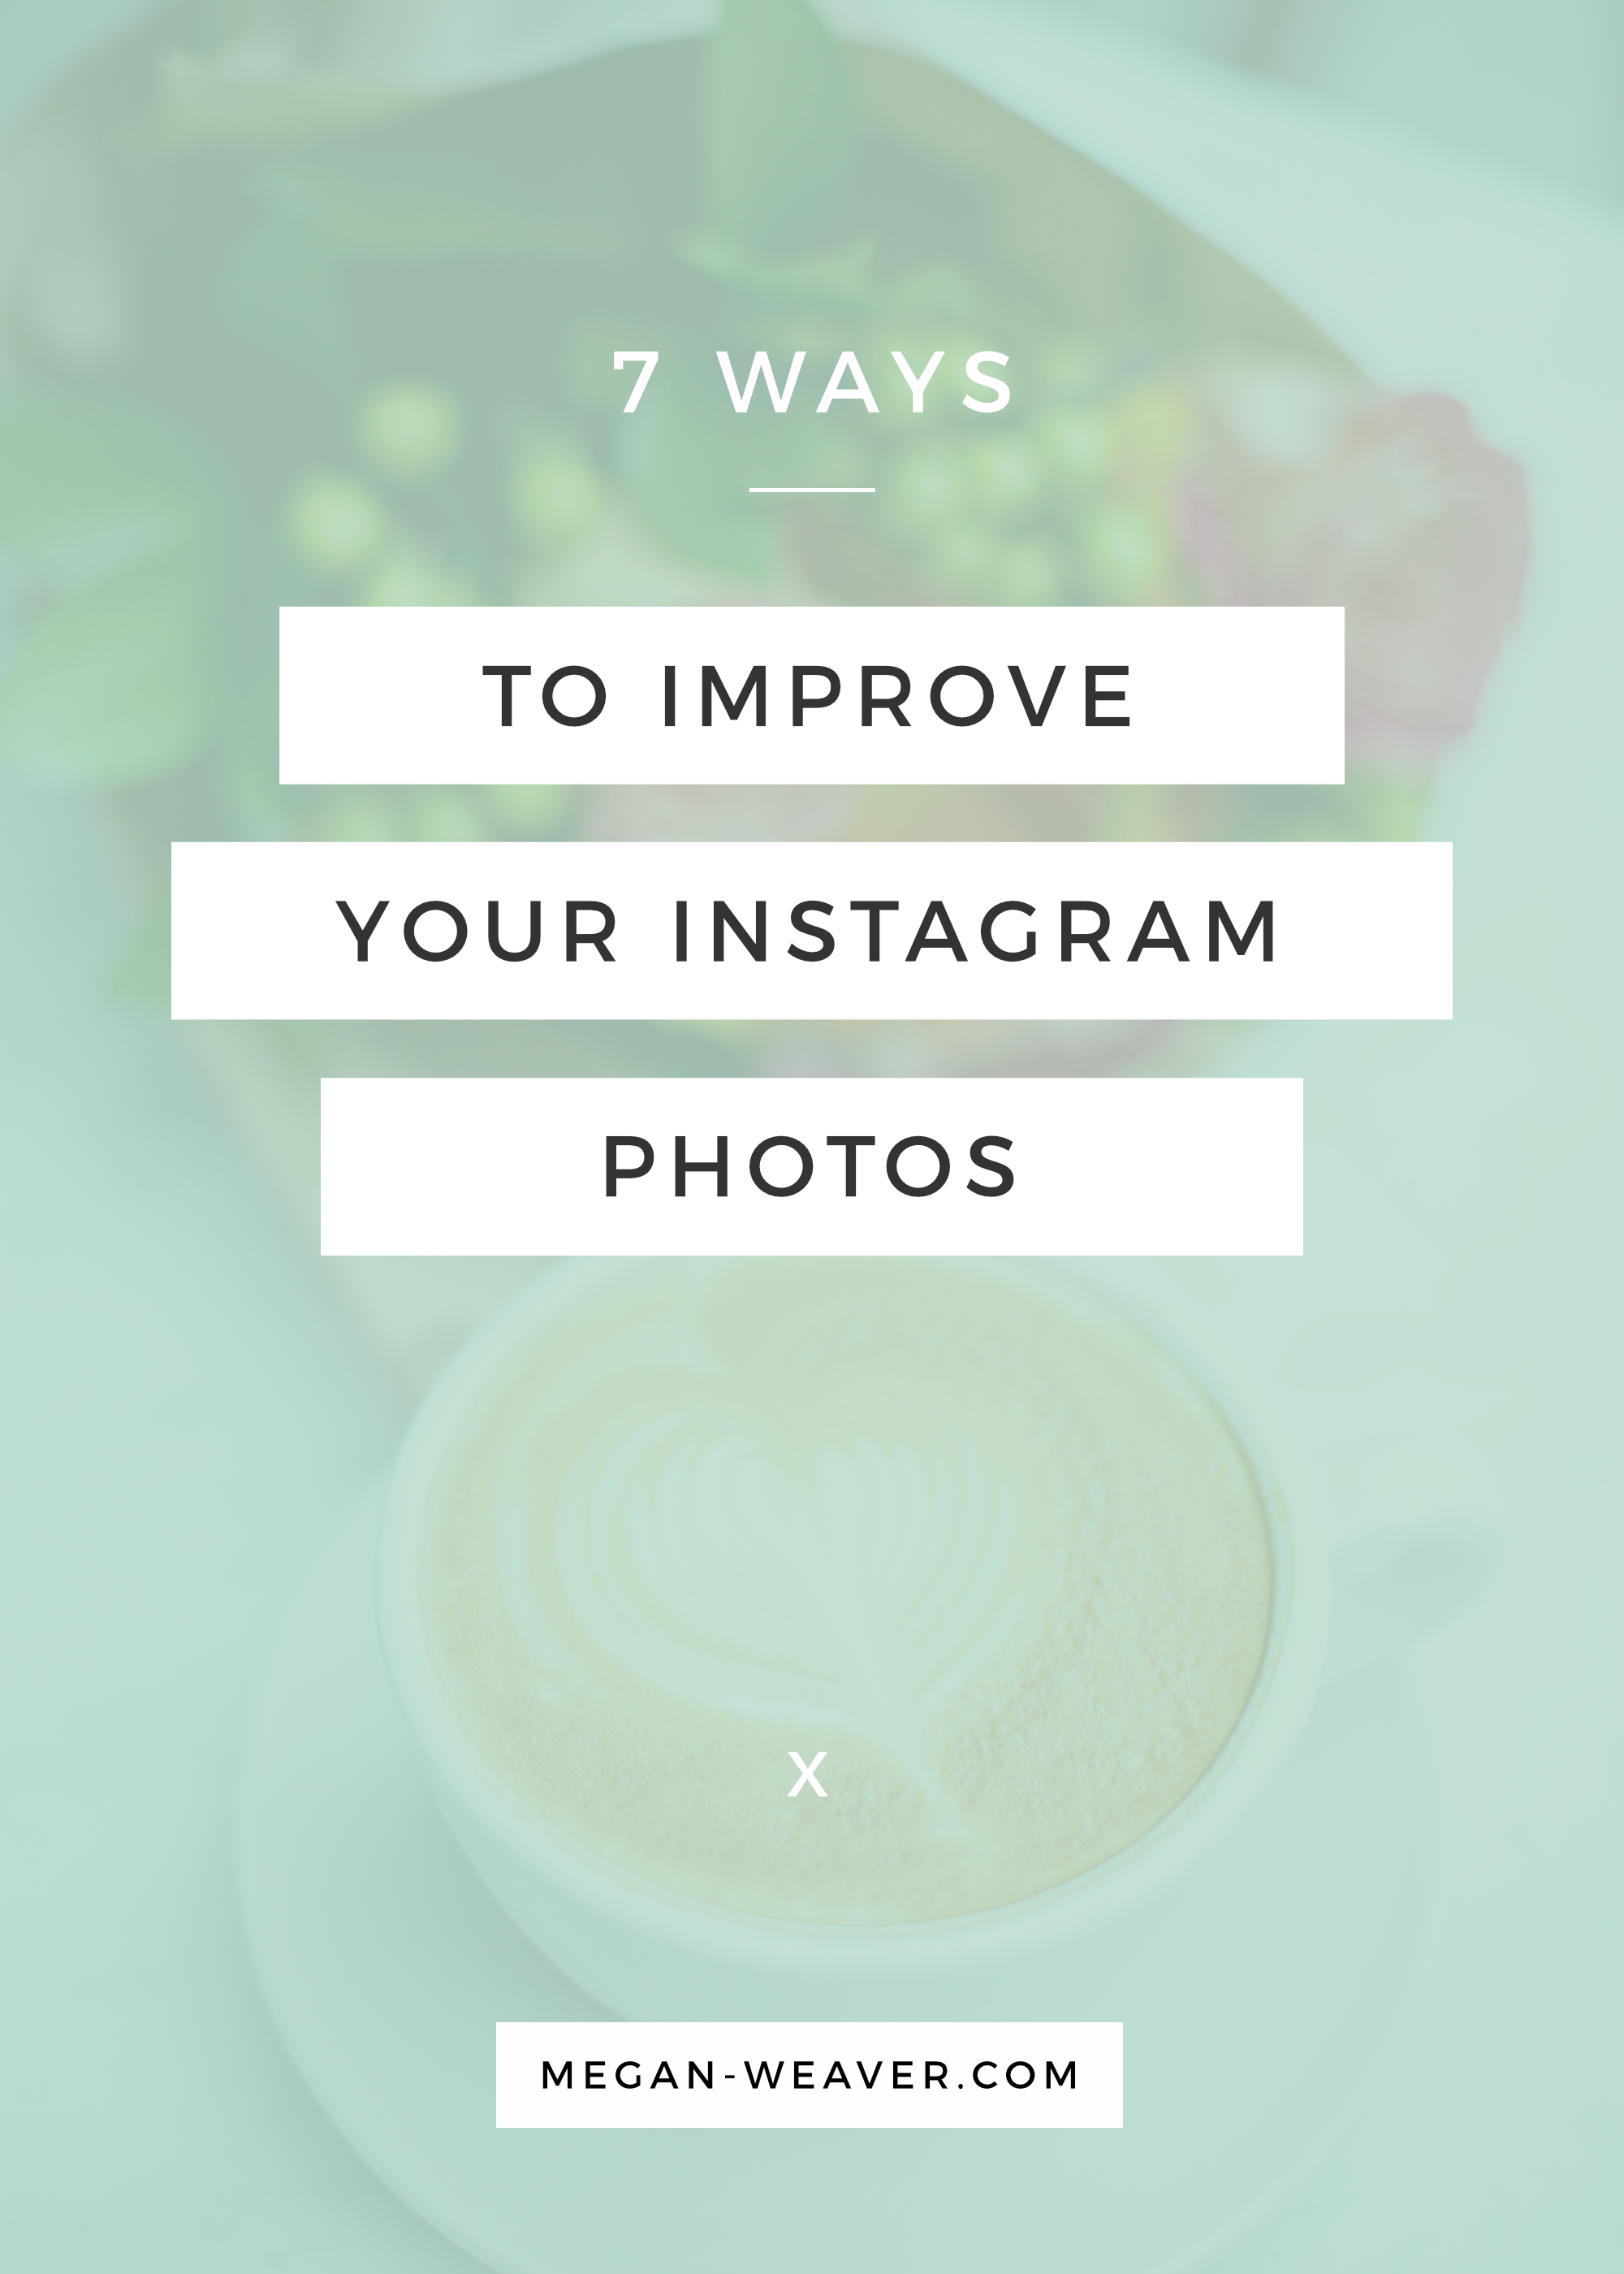 One of the best ways to draw readers to your blog is through Instagram. Learn how to create high quality Instagram photos with these 7 tips!